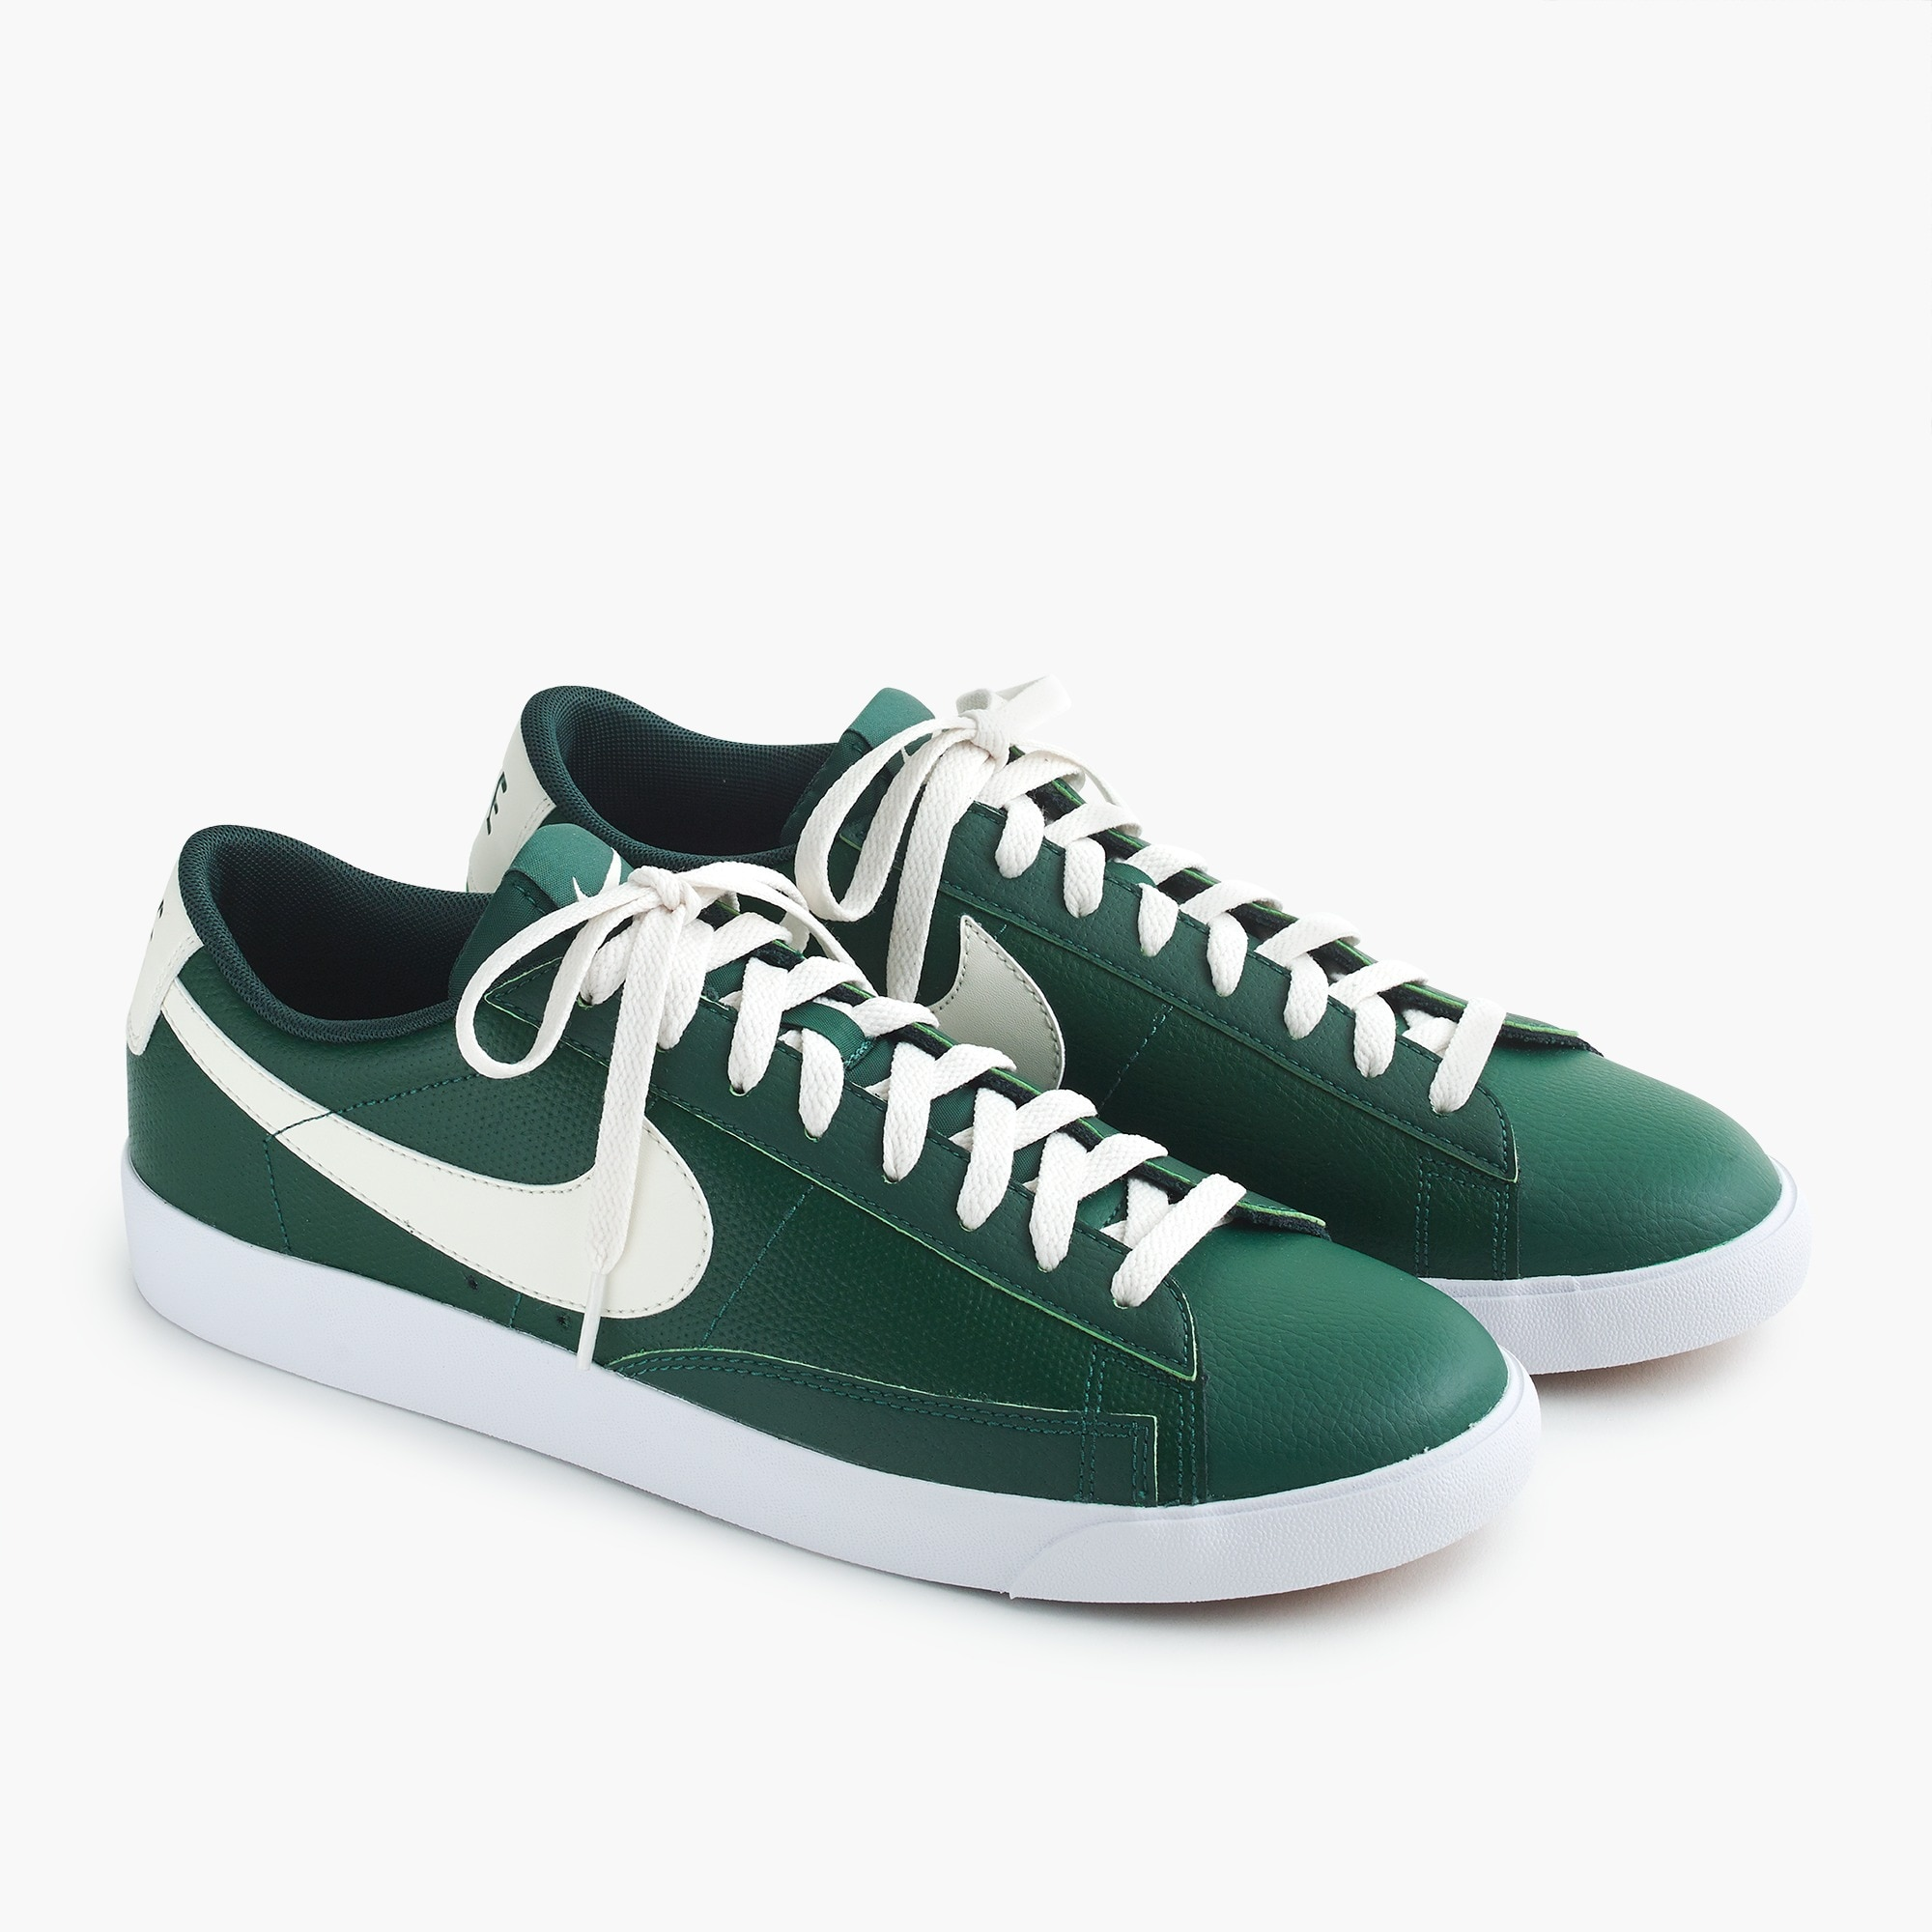 mens Nike® Blazer sneakers in leather